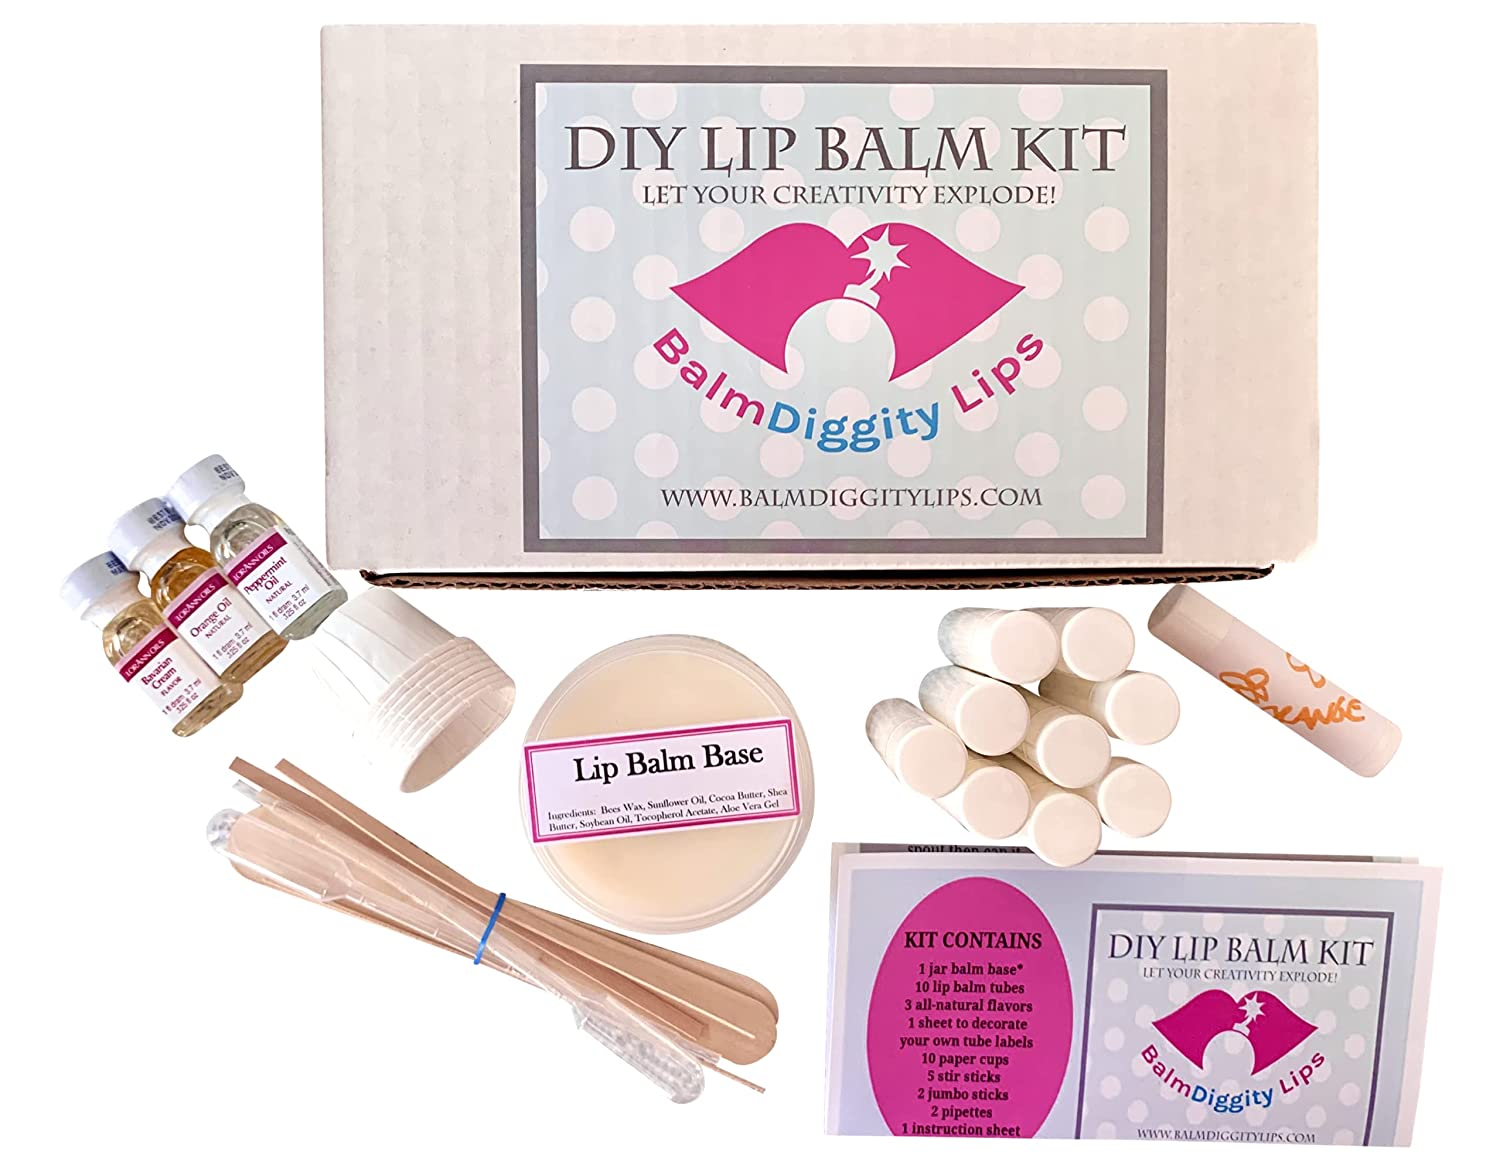 Lip Balm making kit DYI 20 piece set, make 20 Chap Sticks, includes melt  and pour balm and all you need to craft Balmdiggity Lips